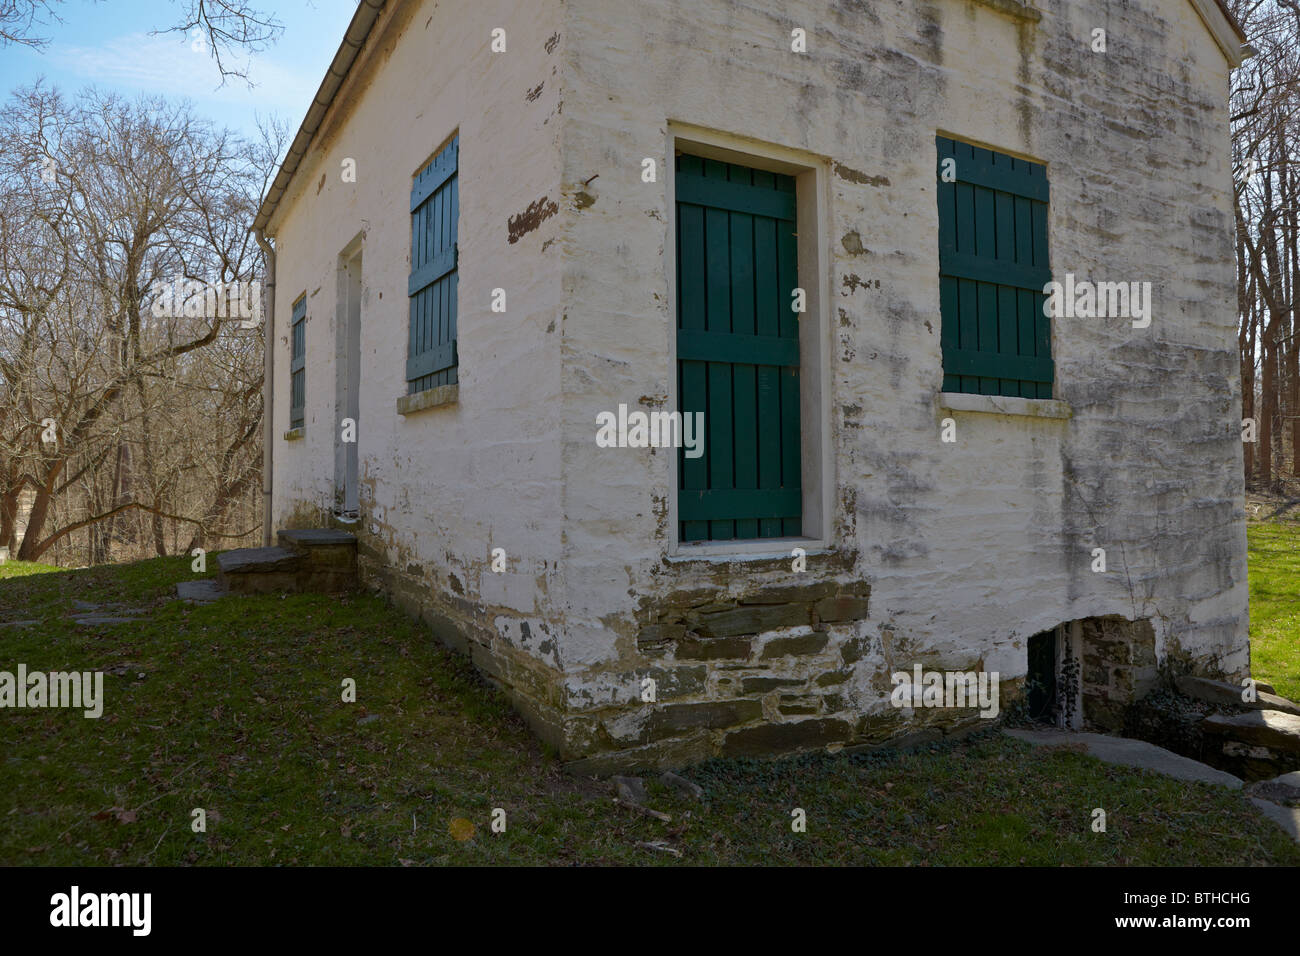 The north side and front exterior of Lockhouse 11 on the C&O Canal, Potomac, Maryland. - Stock Image